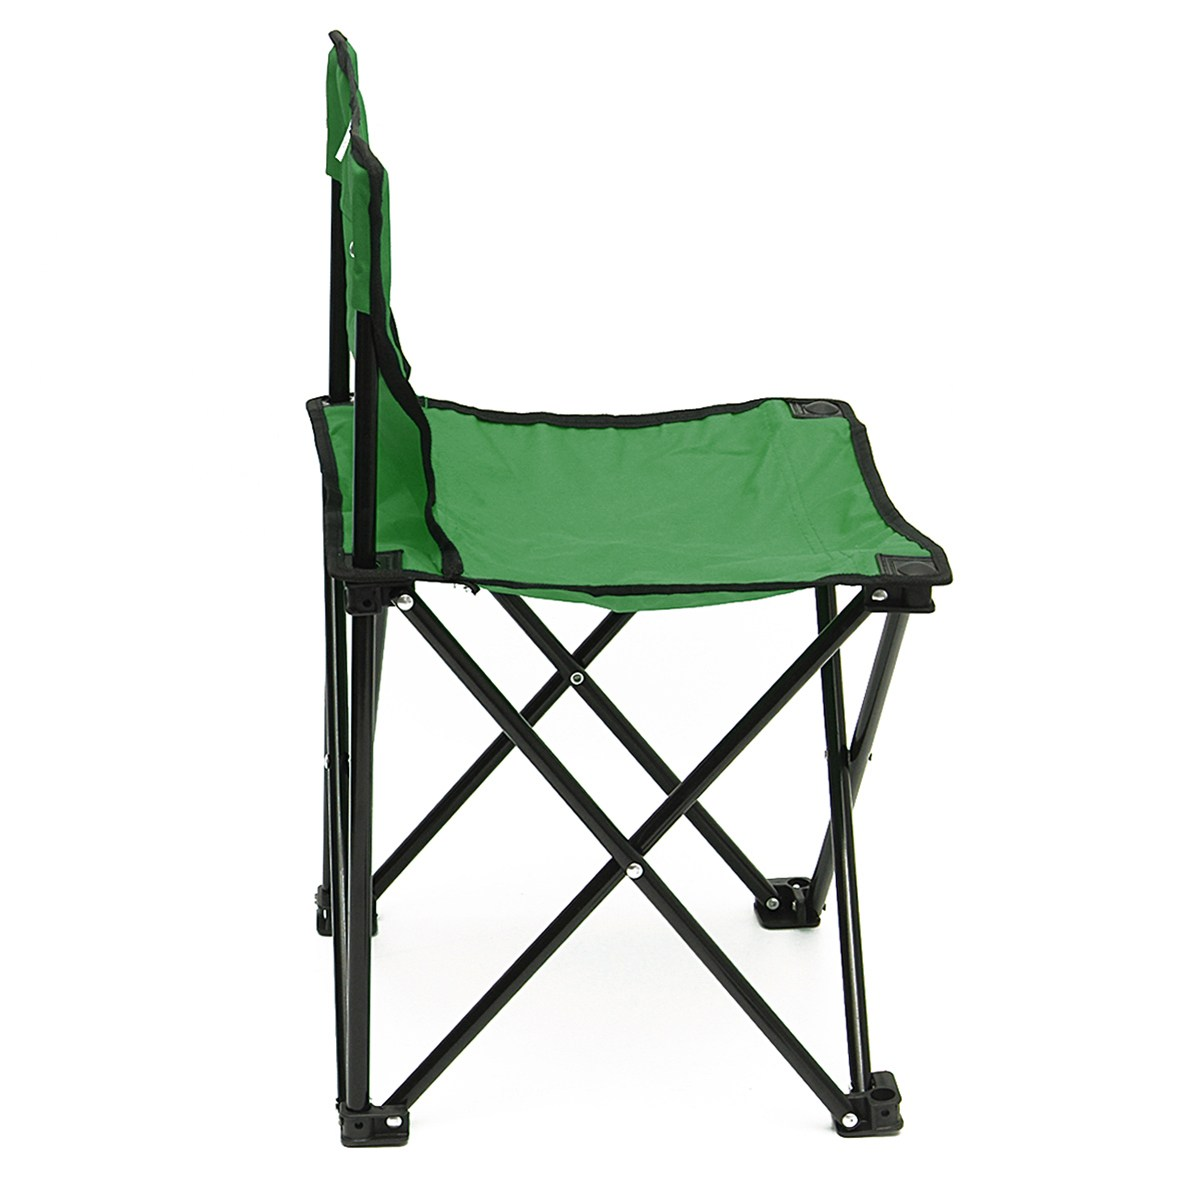 56x34x32 cm Portable Folding Chair Seat Oxford cloth Folding Picnic Stool for Camping Hiking Fishing Beach Garden Outdoor Tools outdoor traveling camping tripod folding stool chair foldable fishing chairs portable fishing mate fold metal chair